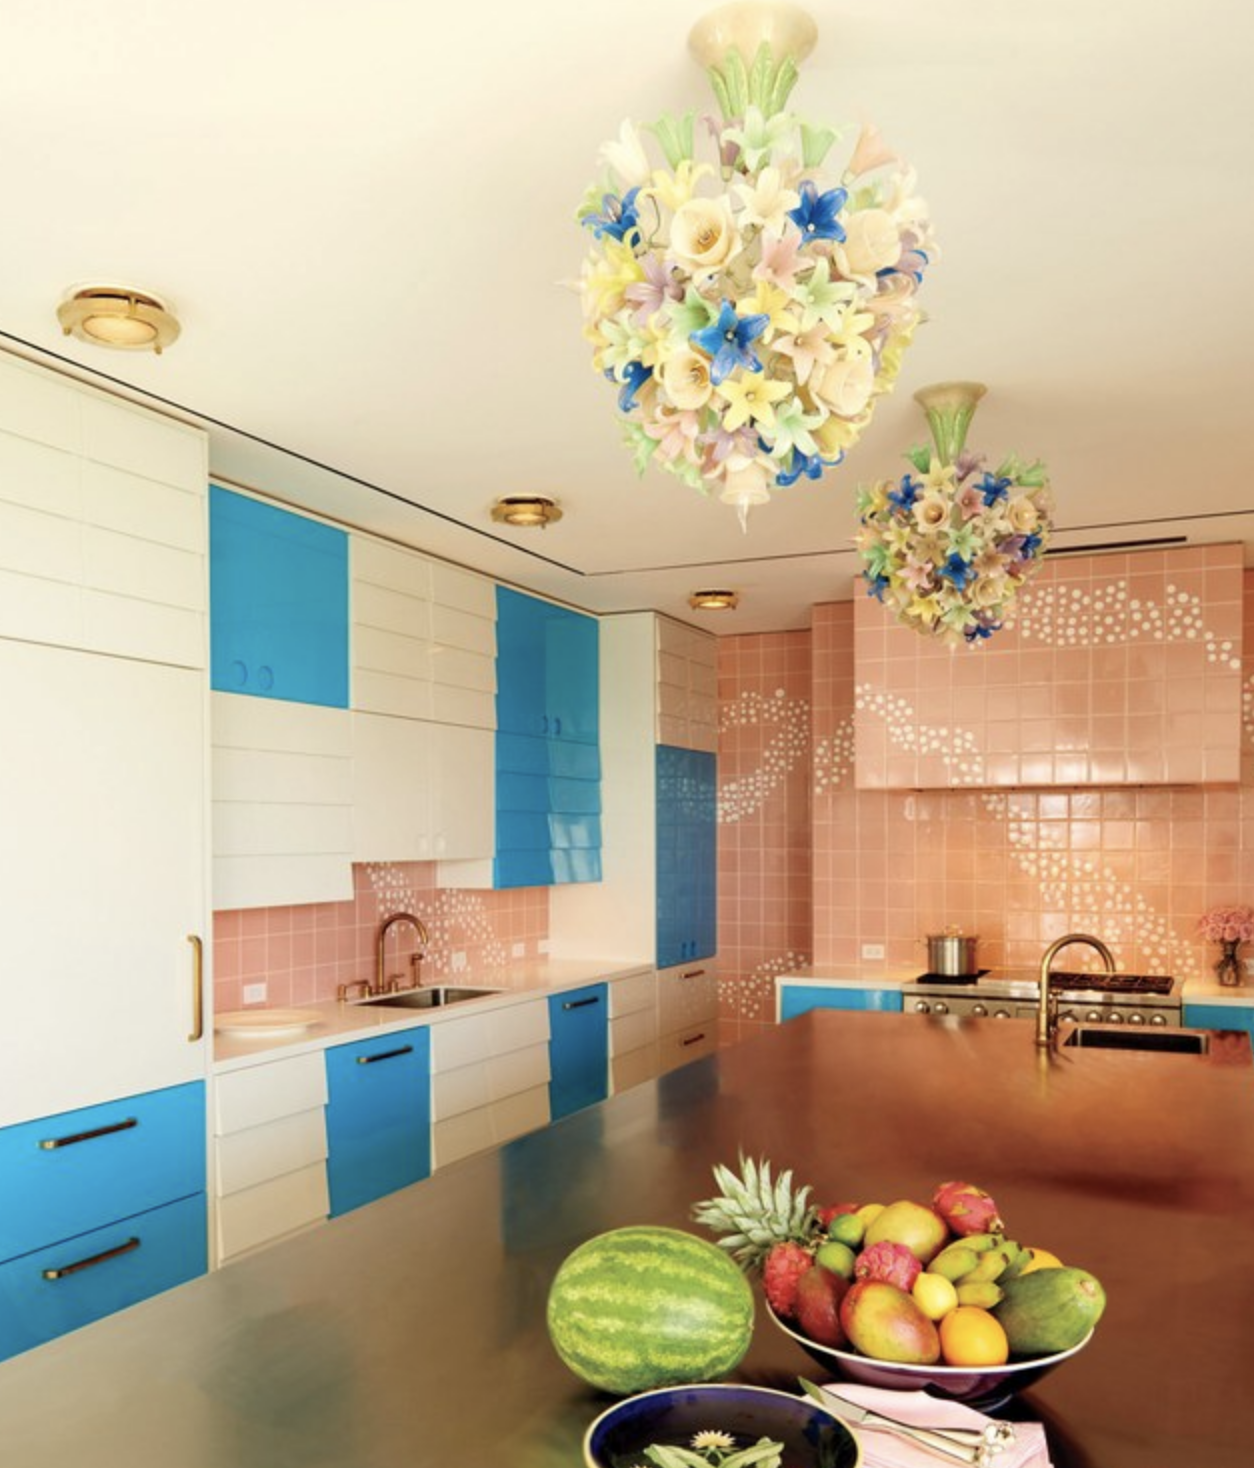 Bright and lively kitchen colour from a blog post by forthefloorandmore.com about kitchen ideas for 2018